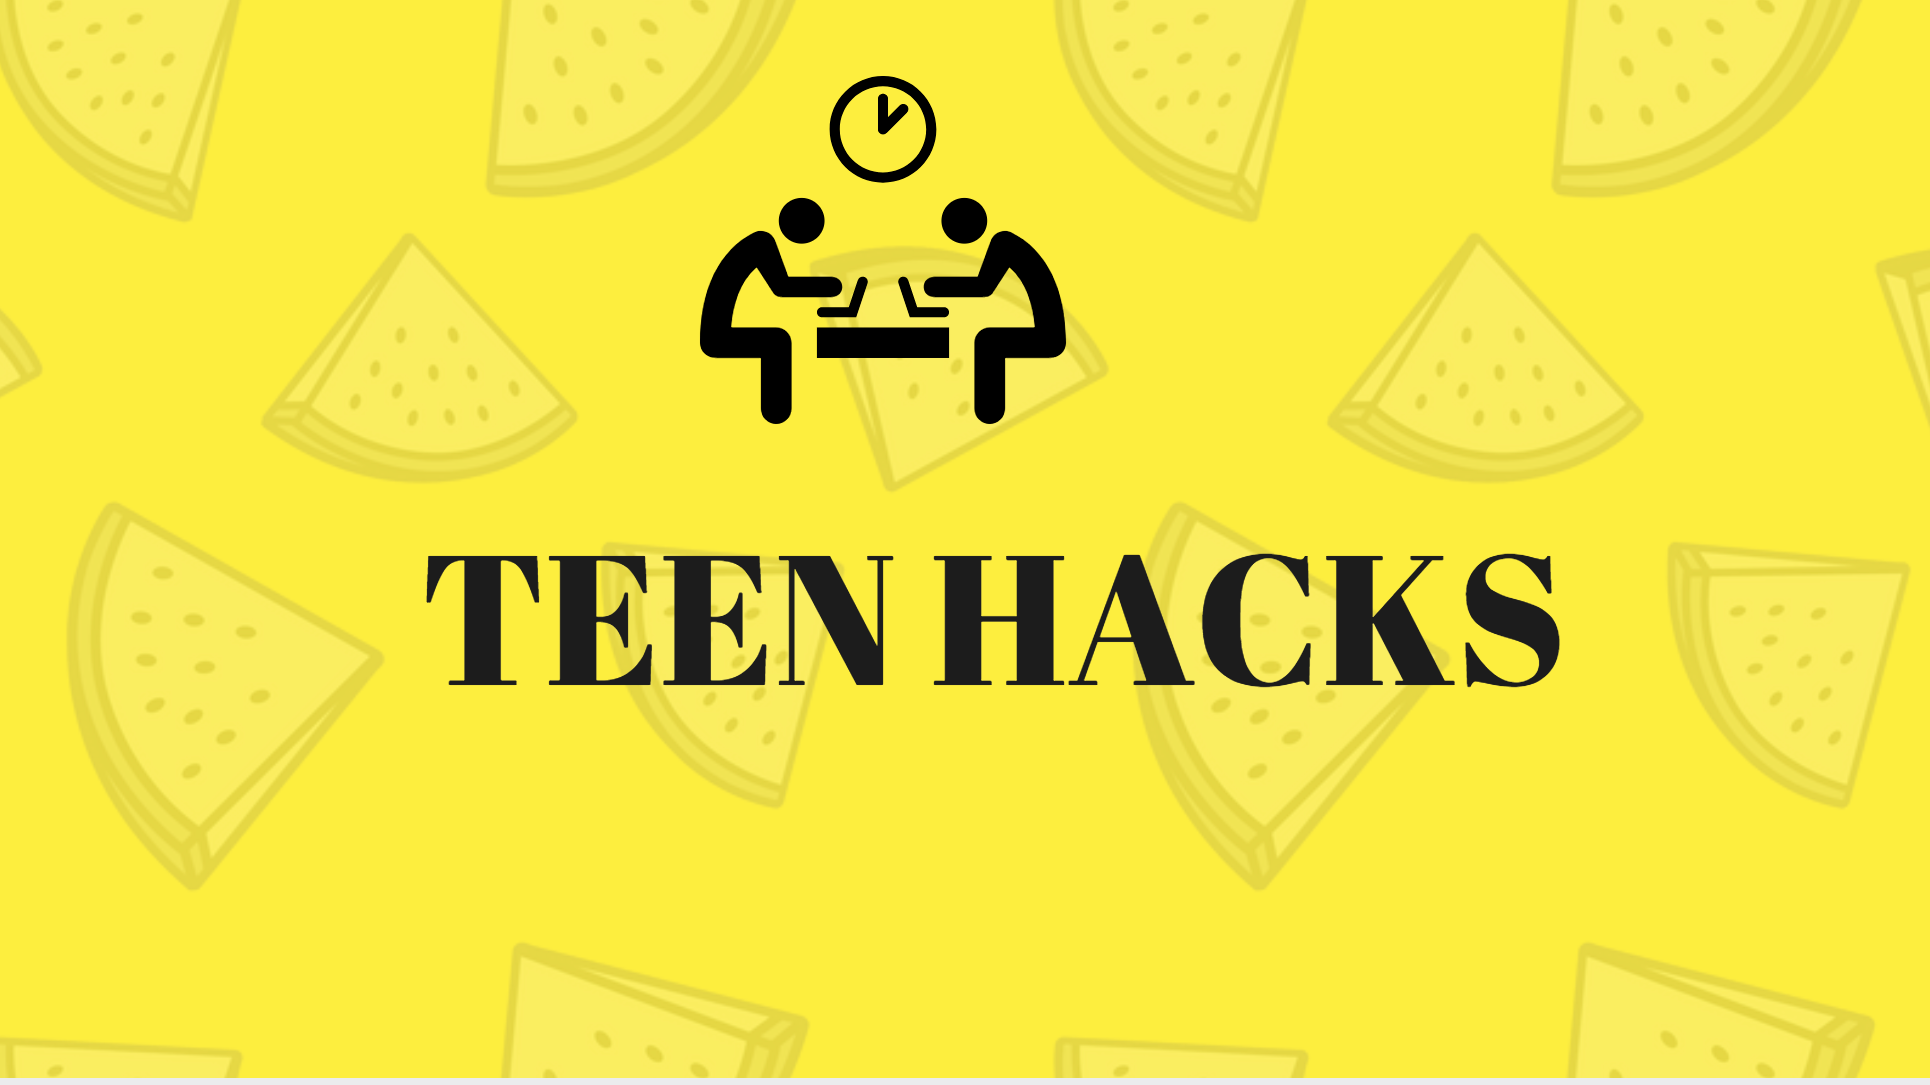 teenhacks1.png